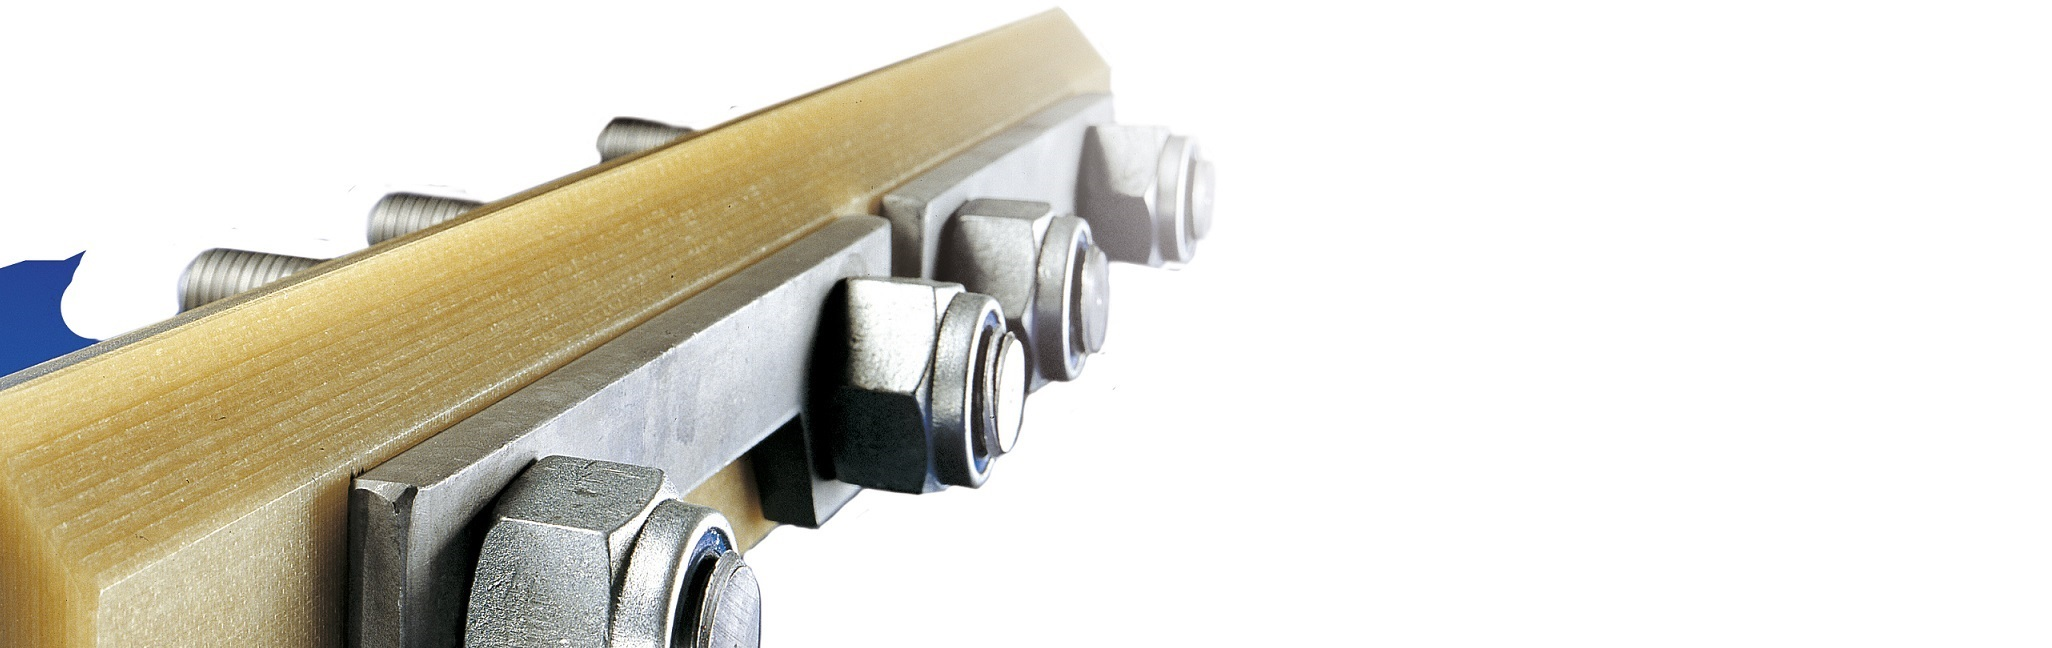 Insulation Rail Joint Systems